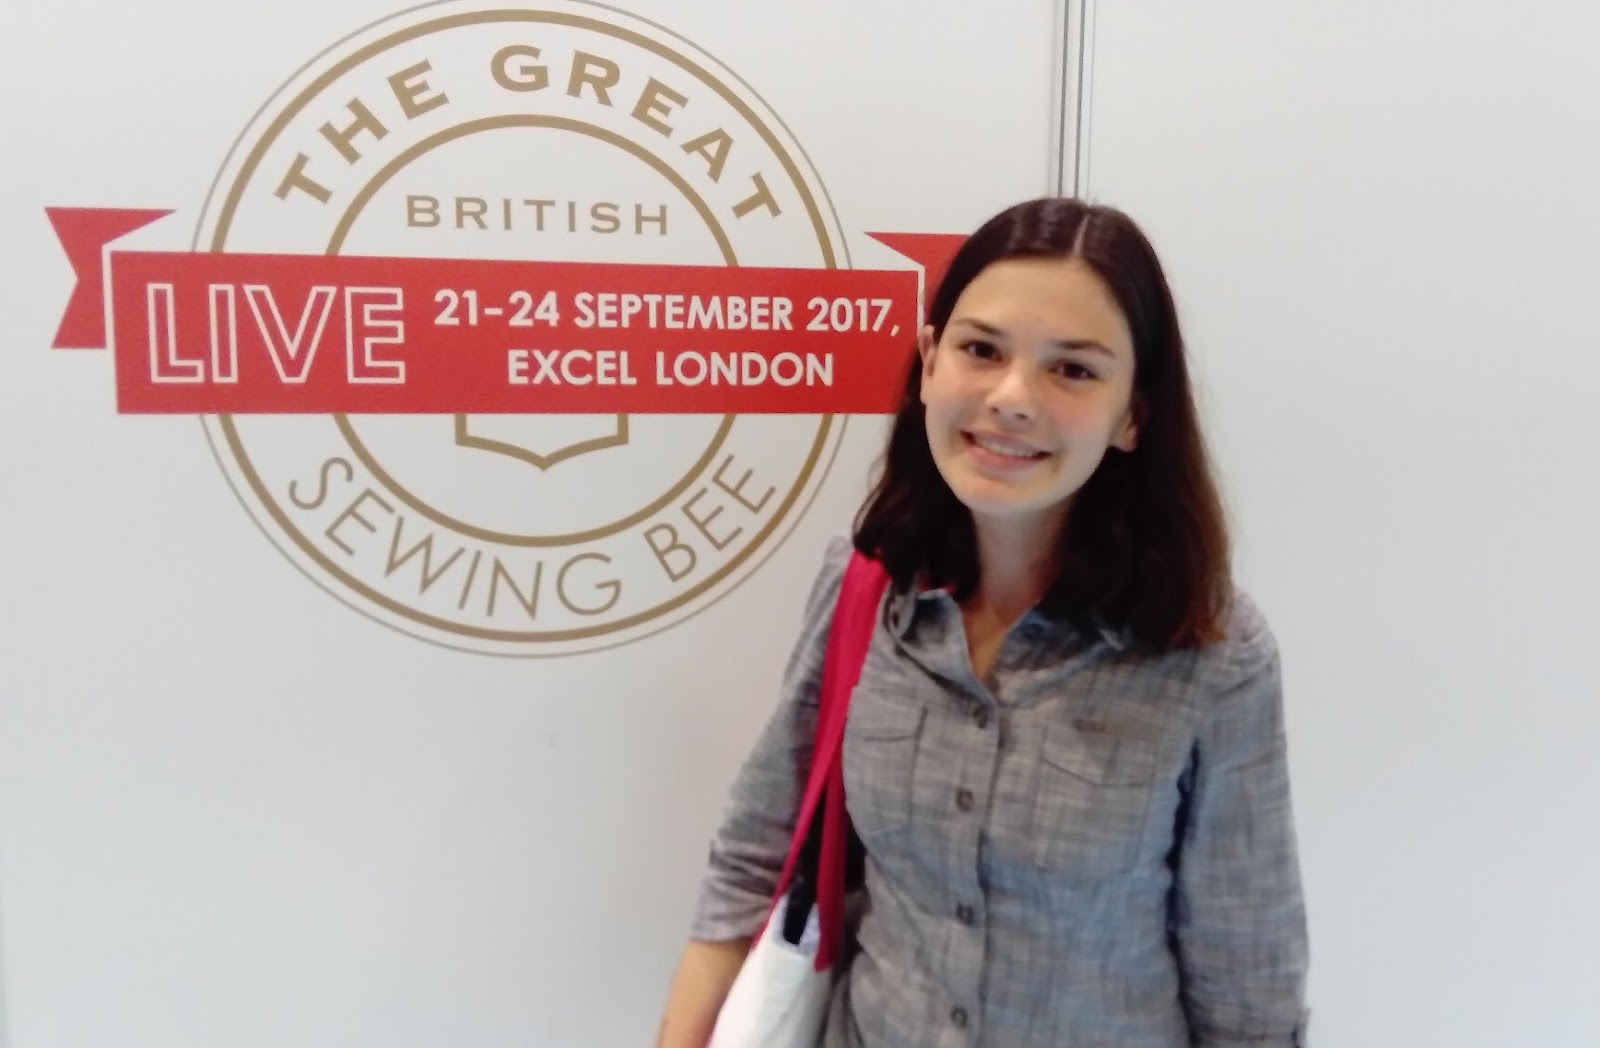 Lets Get Sewing The Great British Sewing Bee Live